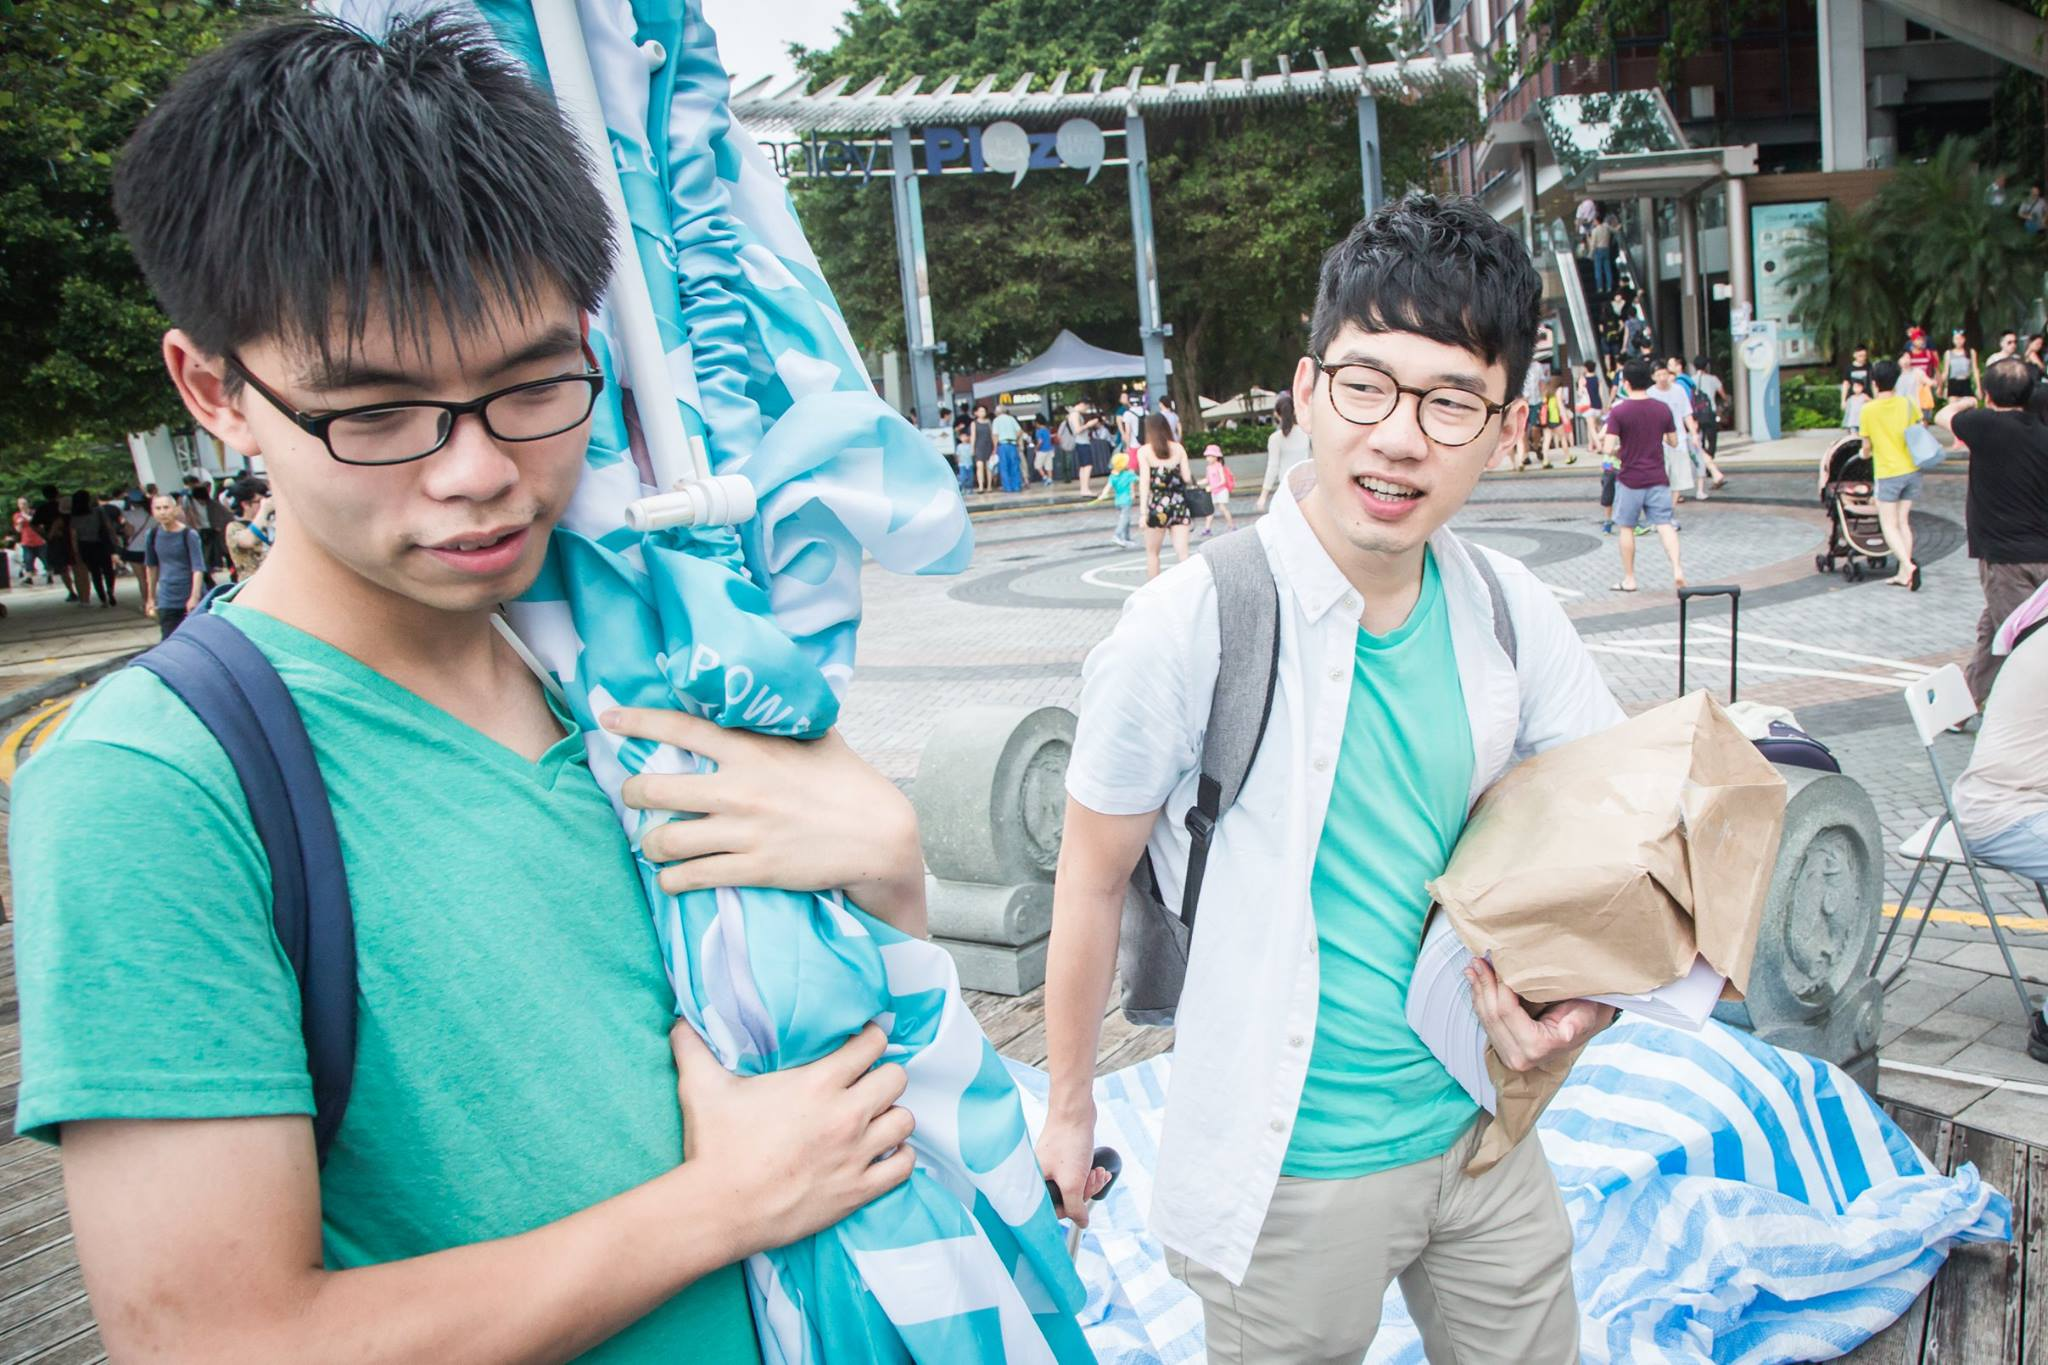 Joshua Wong (left) and Nathan Law (right) preparing to campaign on the street. (Photo: Facebook/Joshua Wong)